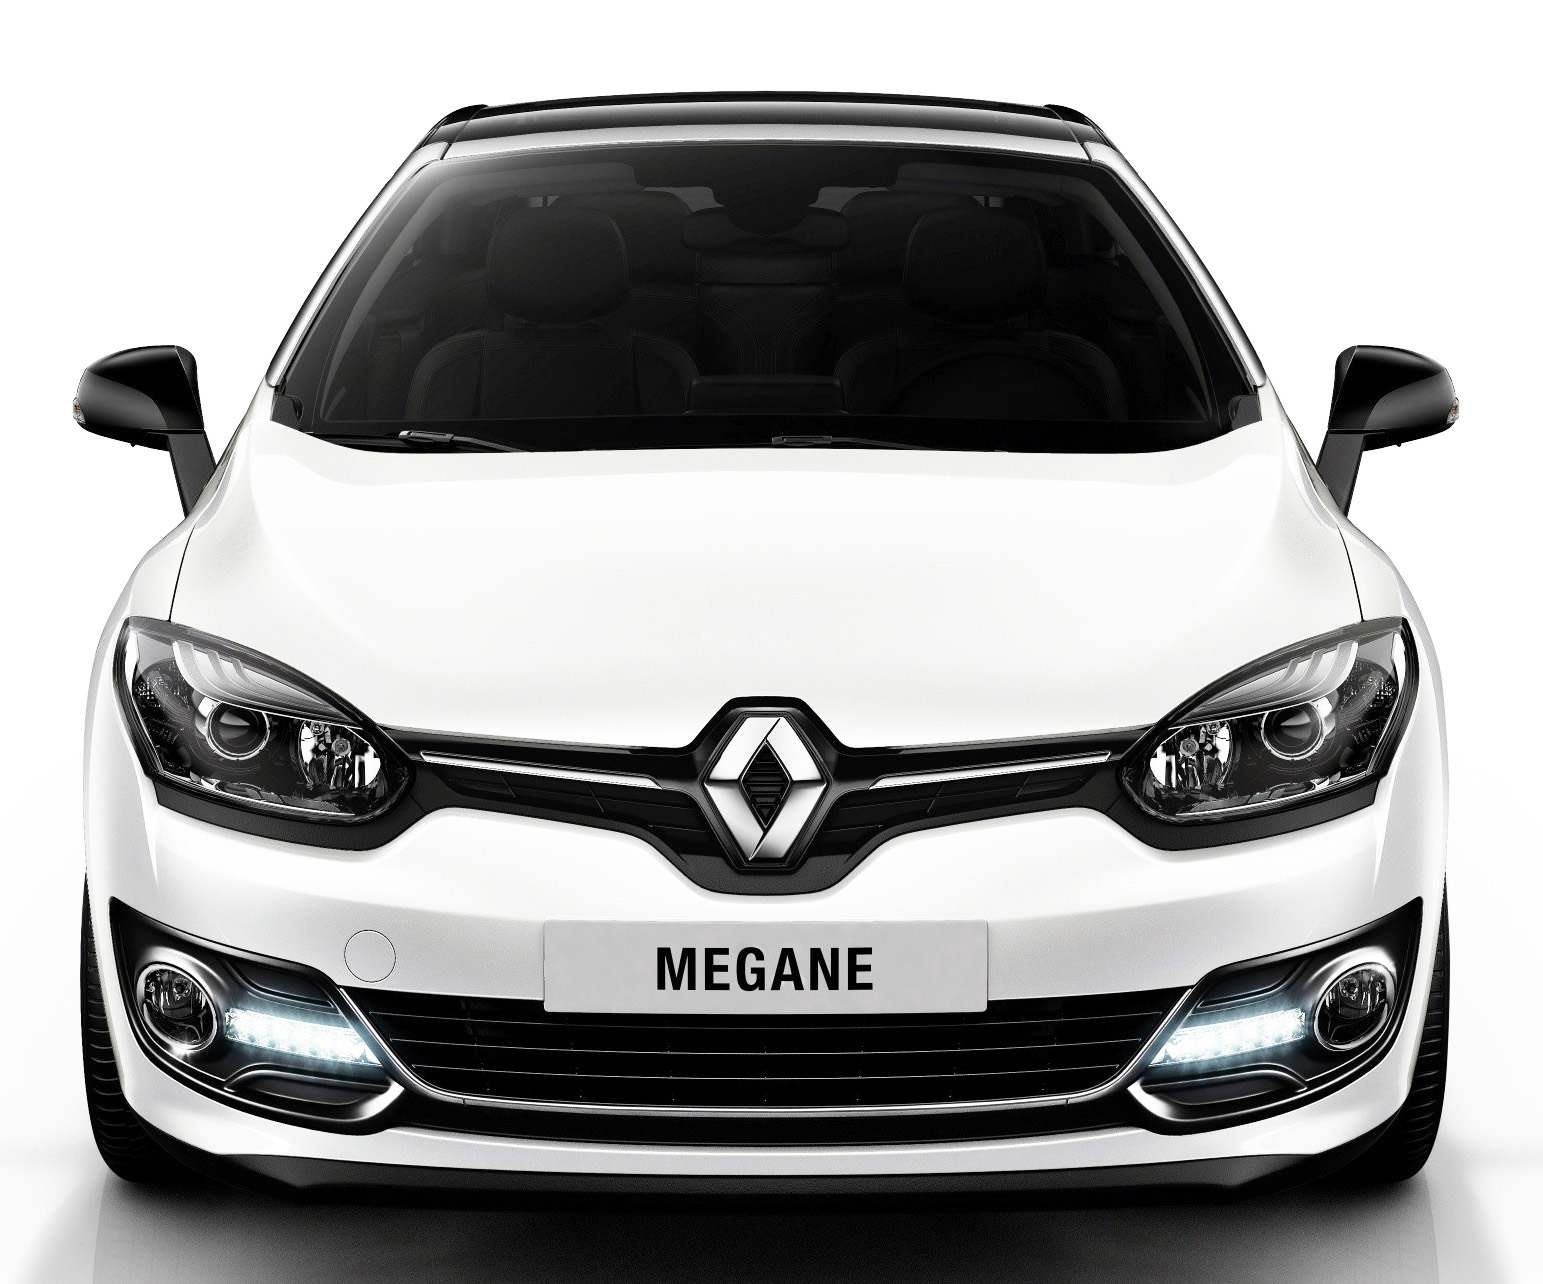 renault megane coupe cabriolet facelifted for 2014 image 217479. Black Bedroom Furniture Sets. Home Design Ideas